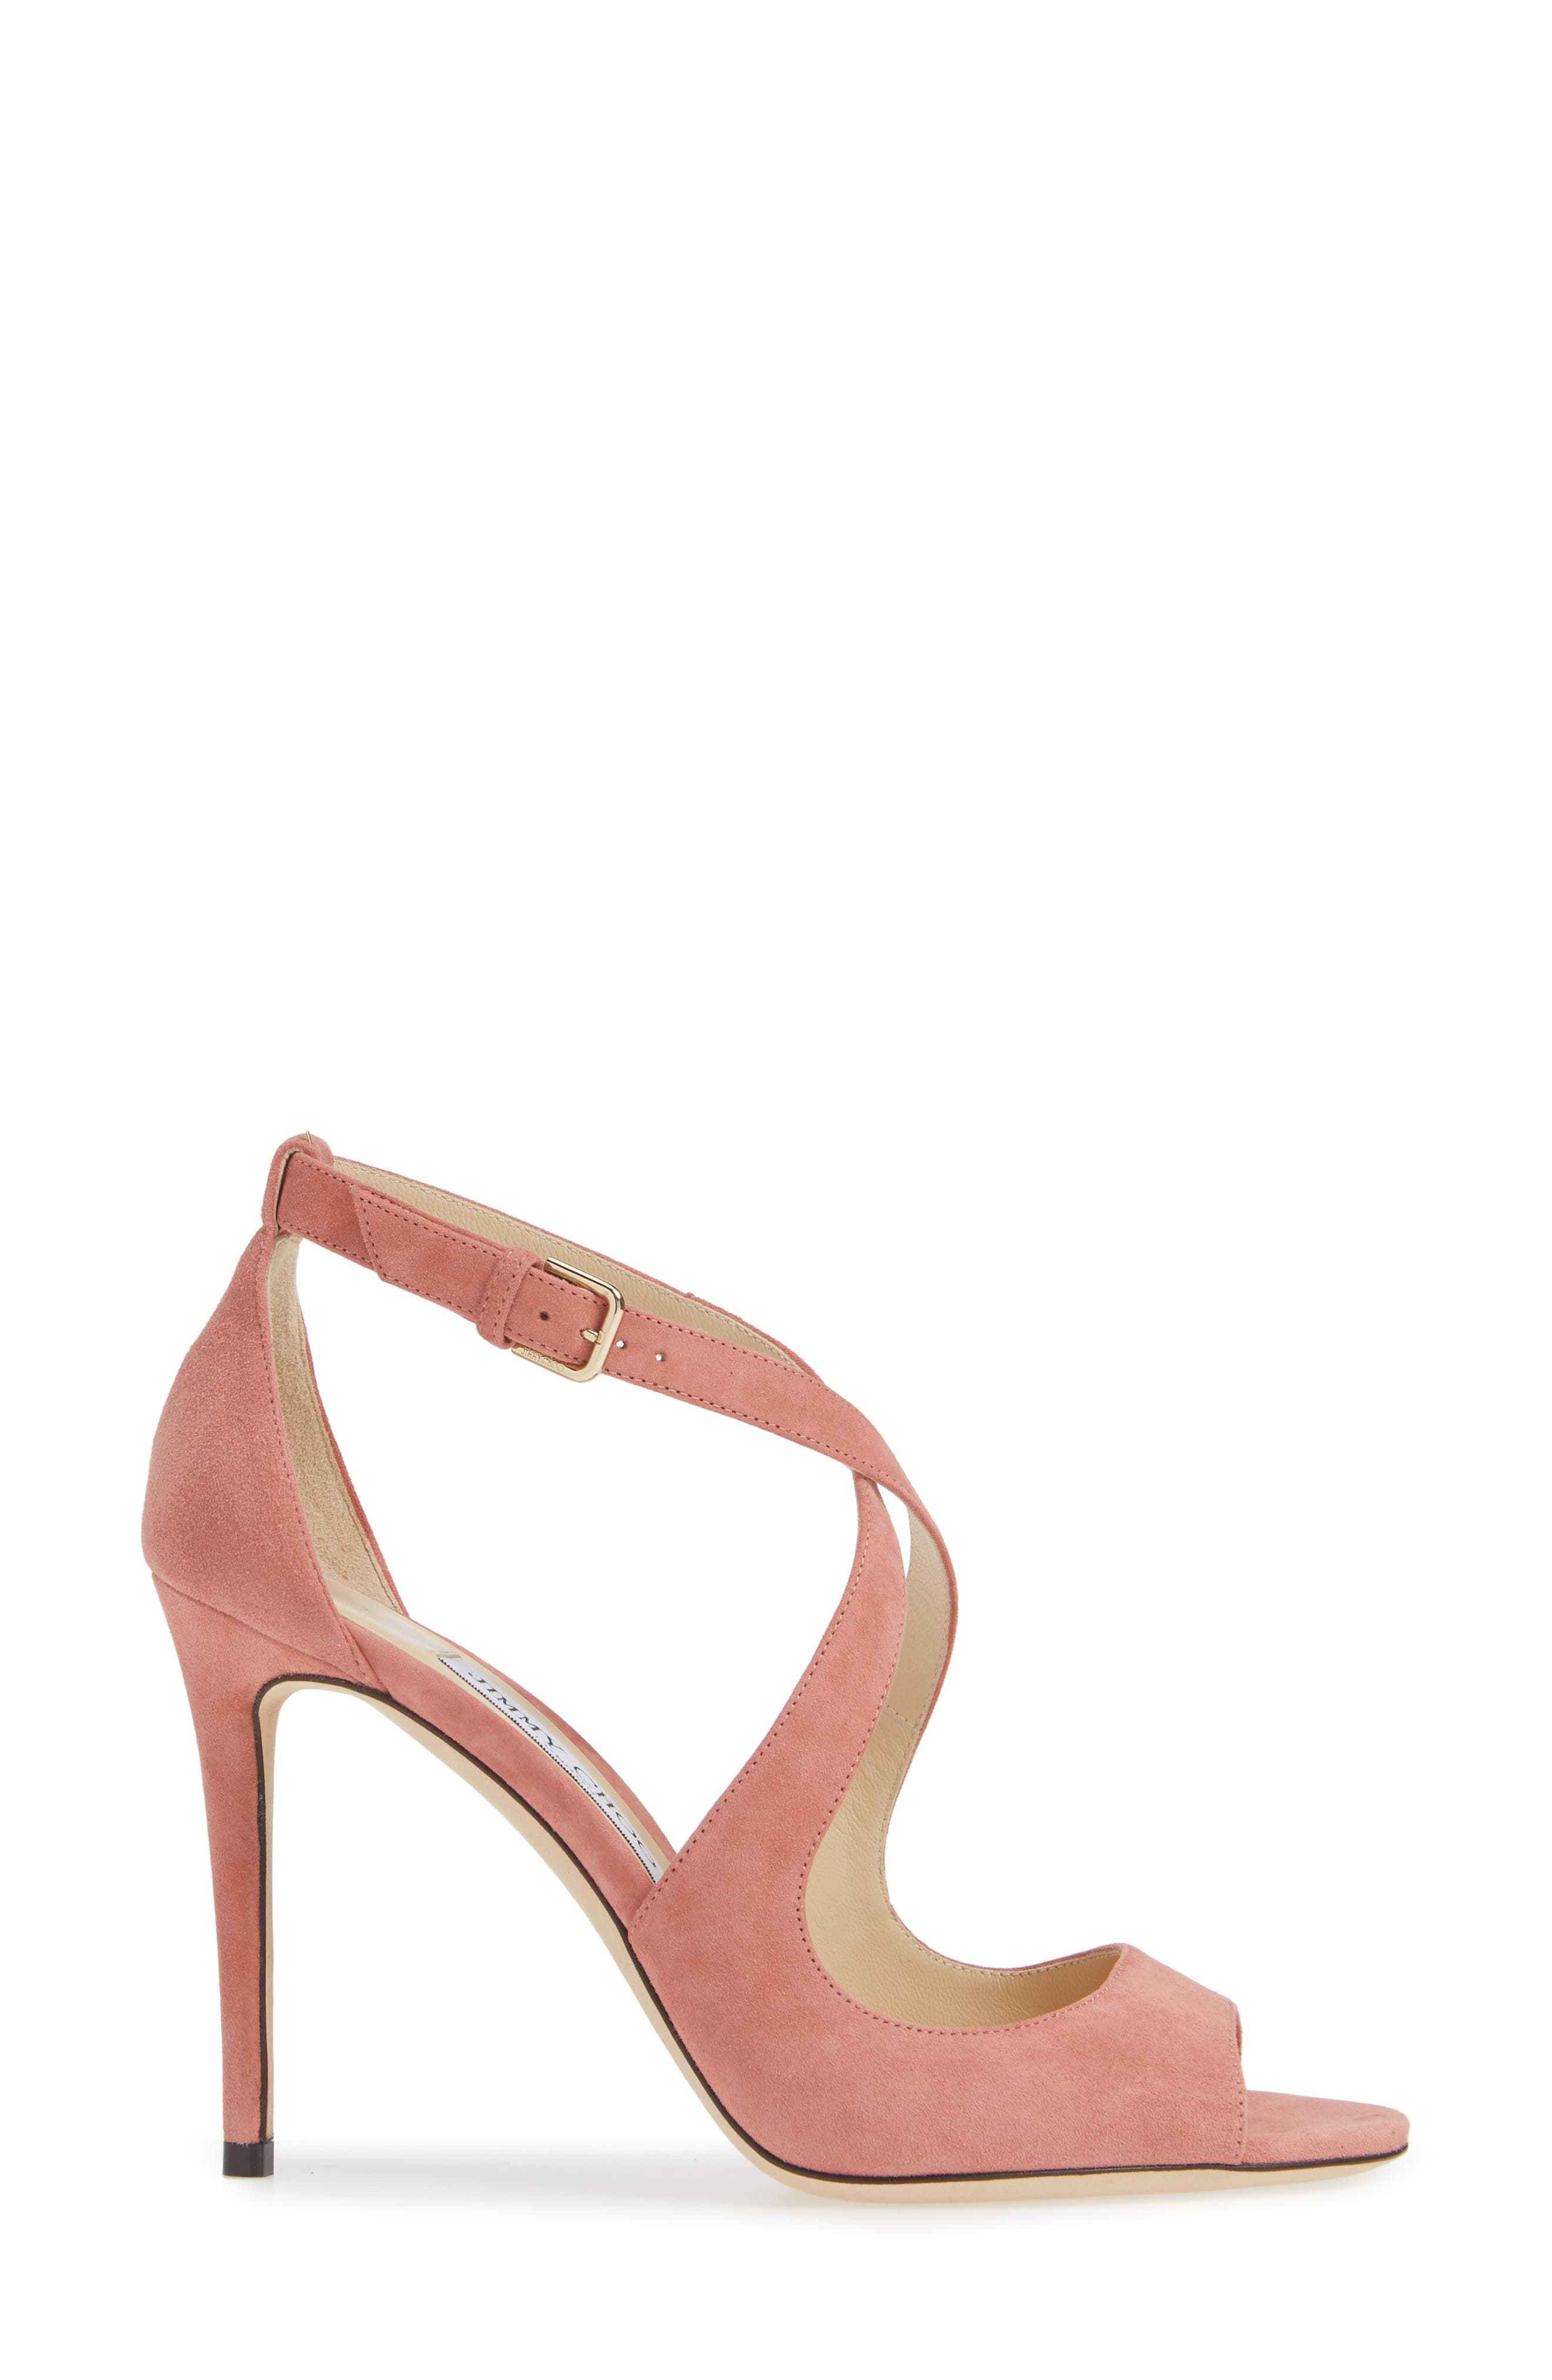 Emily Peep Toe Sandal,                             Alternate thumbnail 3, color,                             ROSEWOOD SUEDE